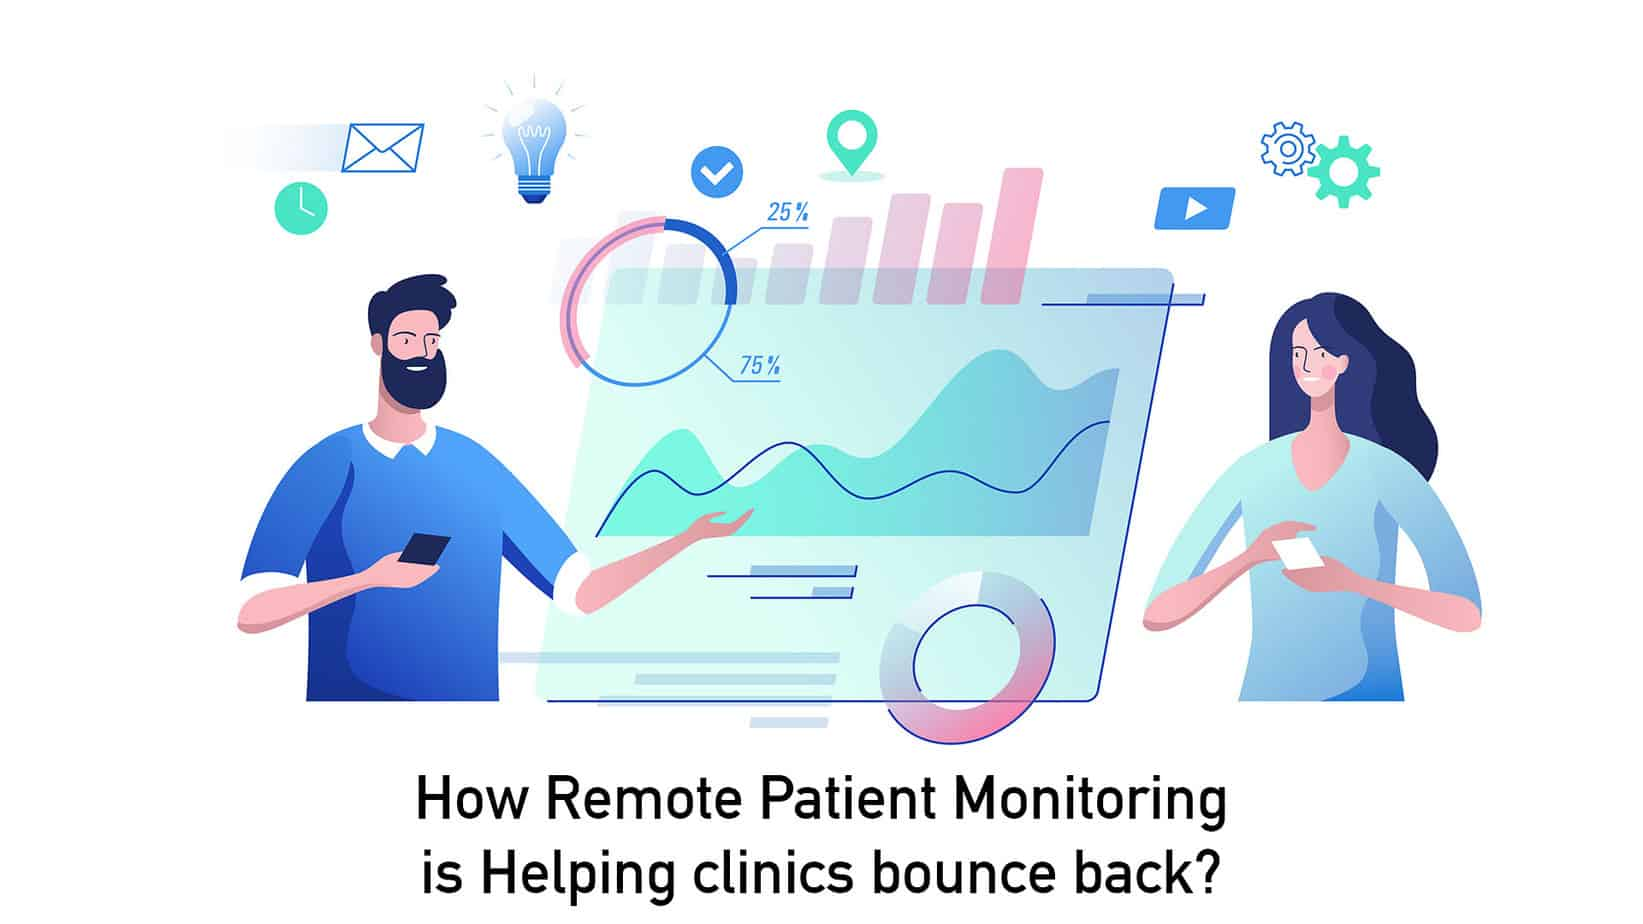 How Remote Patient Monitoring is Helping clinics bounce back